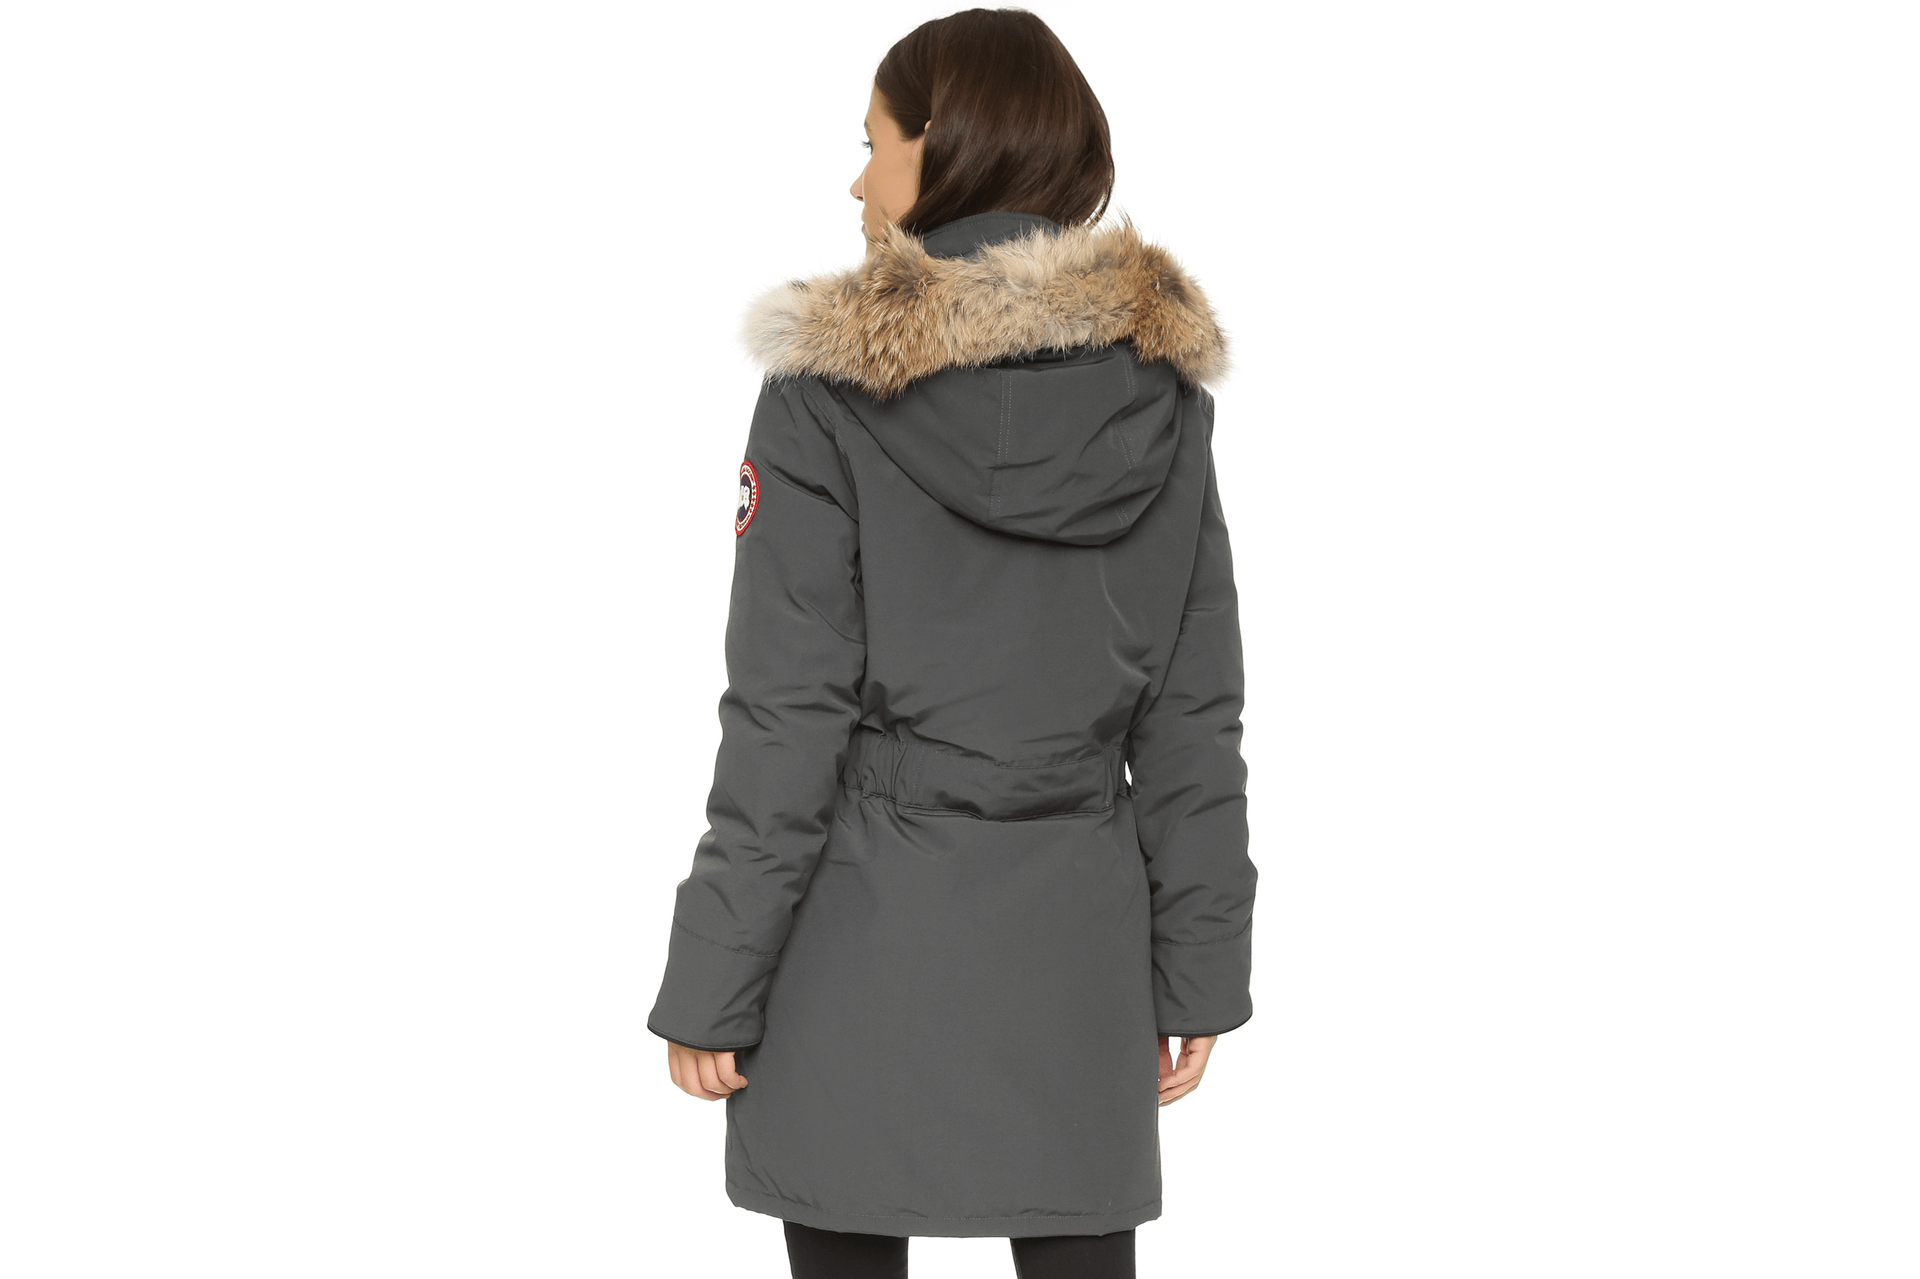 TRILLIUM PARKA HD-6660 GRAPHITE BACK VIEW